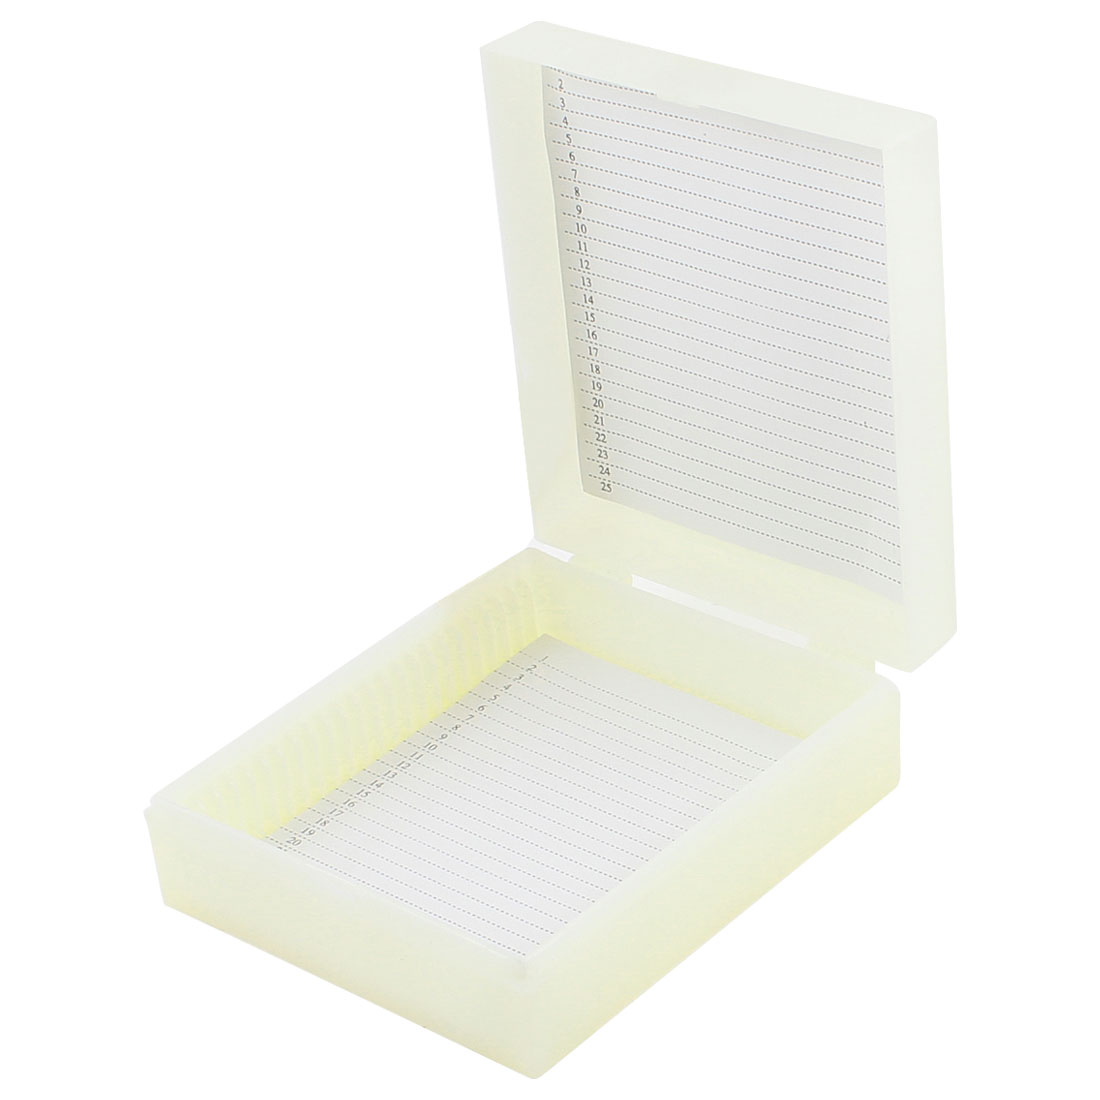 "3.7"" x 3.1"" Beige Plastic Rectangular 25 Slides Microscope Box"